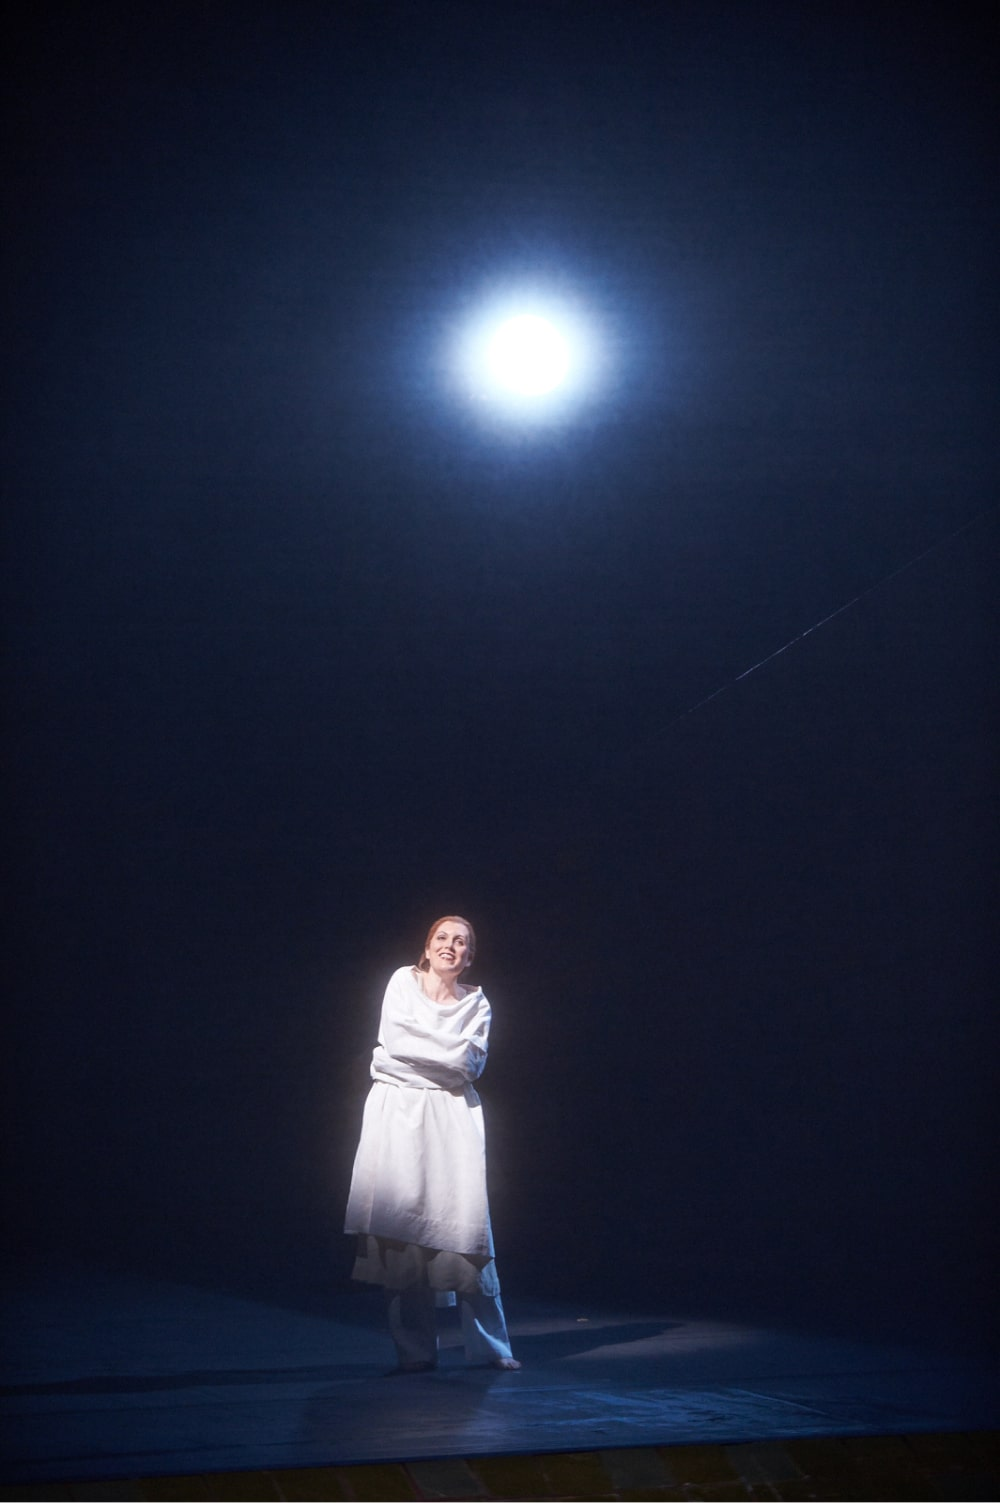 Woman in straight jacket stands smiling in spotlight under gleaming full moon.